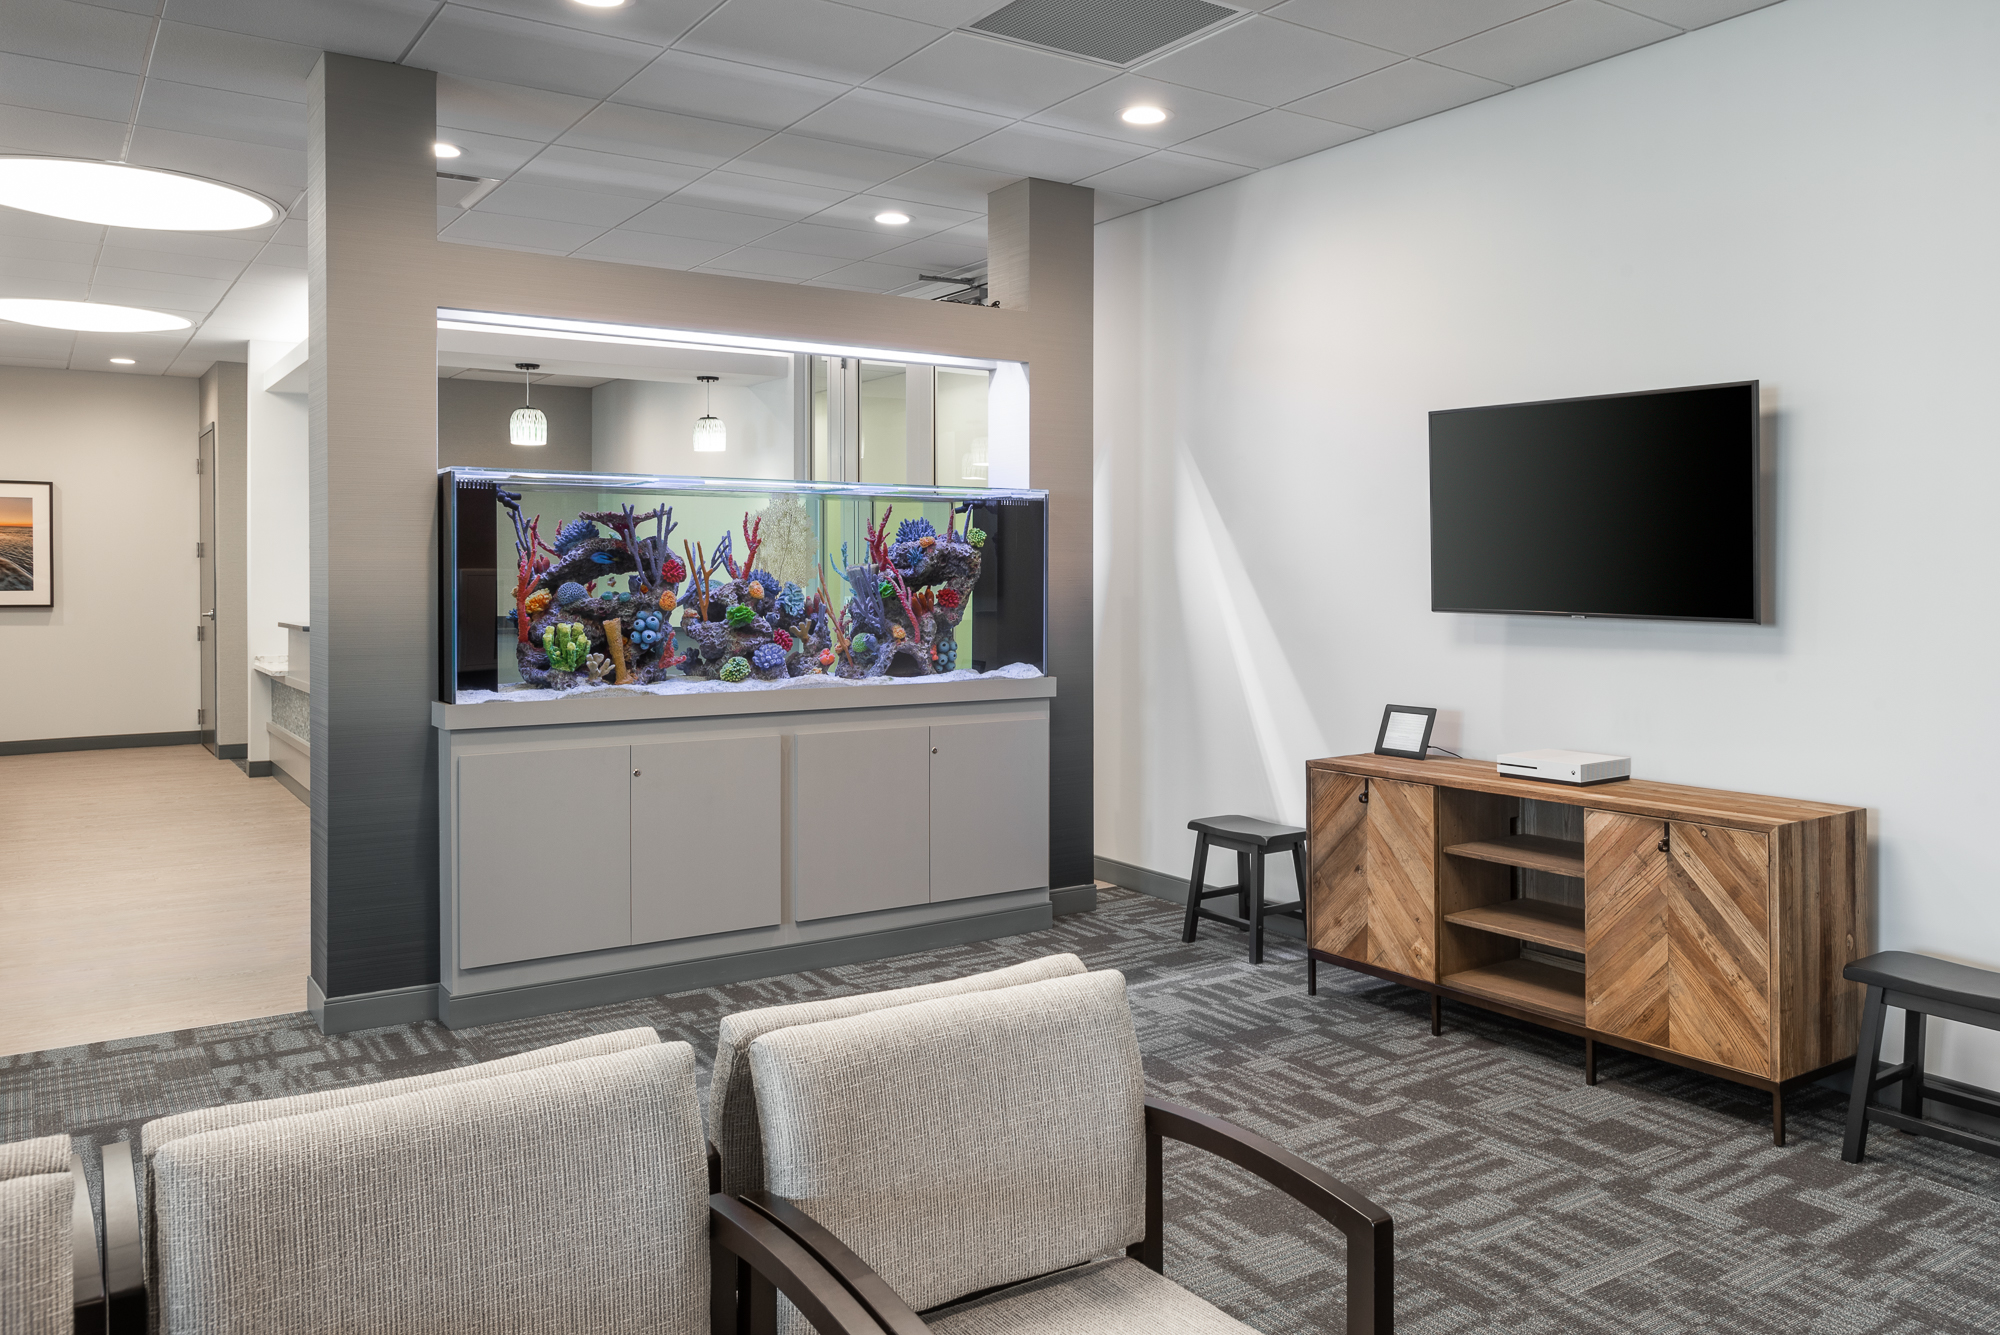 Micamy Design Studio_Interior Design_Pediatric Eye Consultants_North Florida_Riverside_Ophthalmology_Strabismus_Office__Renovation_Patcraft_Aquarium_Fish Tank_Bariatric Chair_Stance.jpg